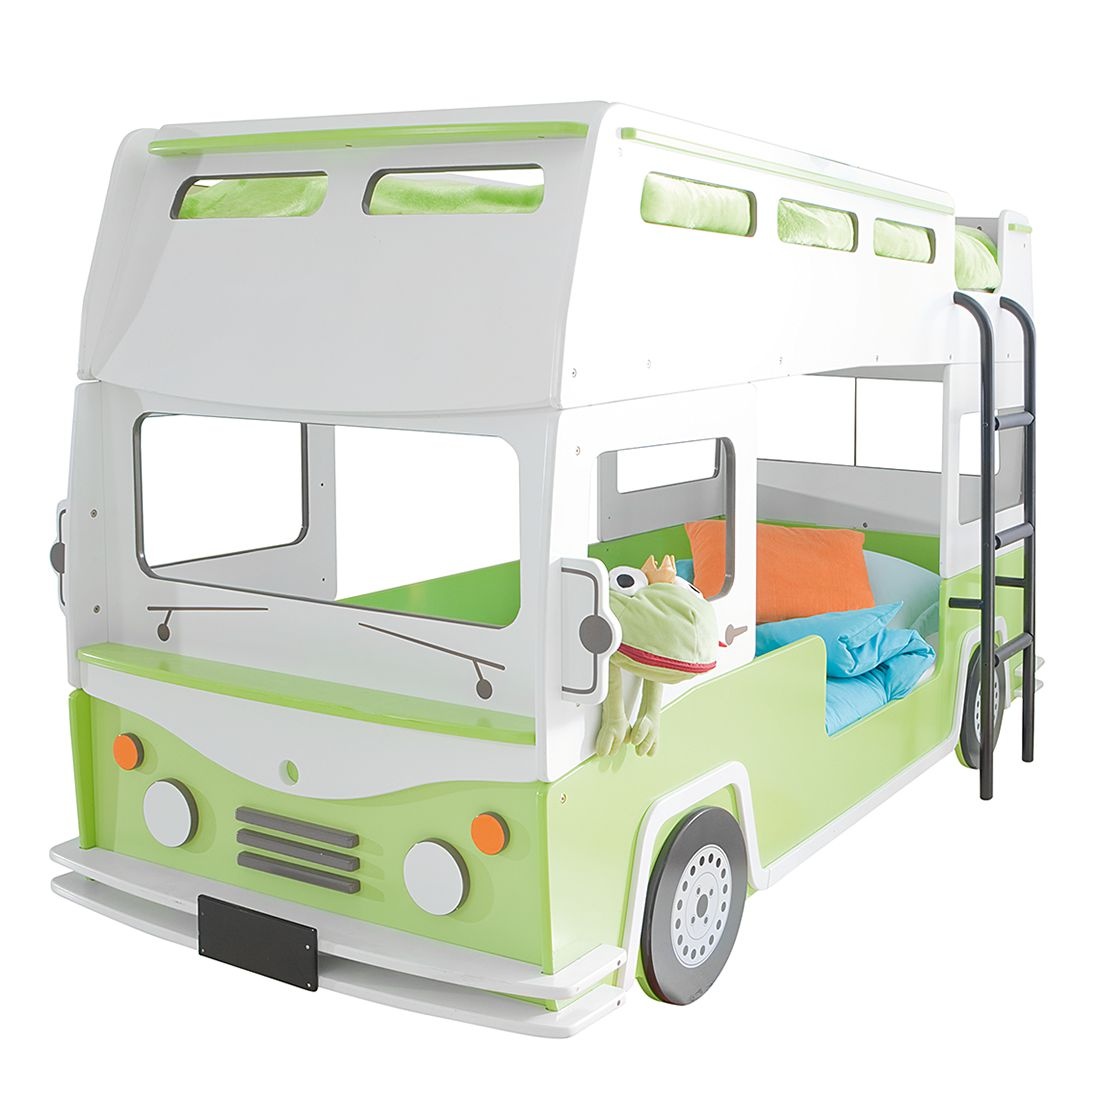 Lit superposé Bussy - Vert / Blanc, Kids Club Collection